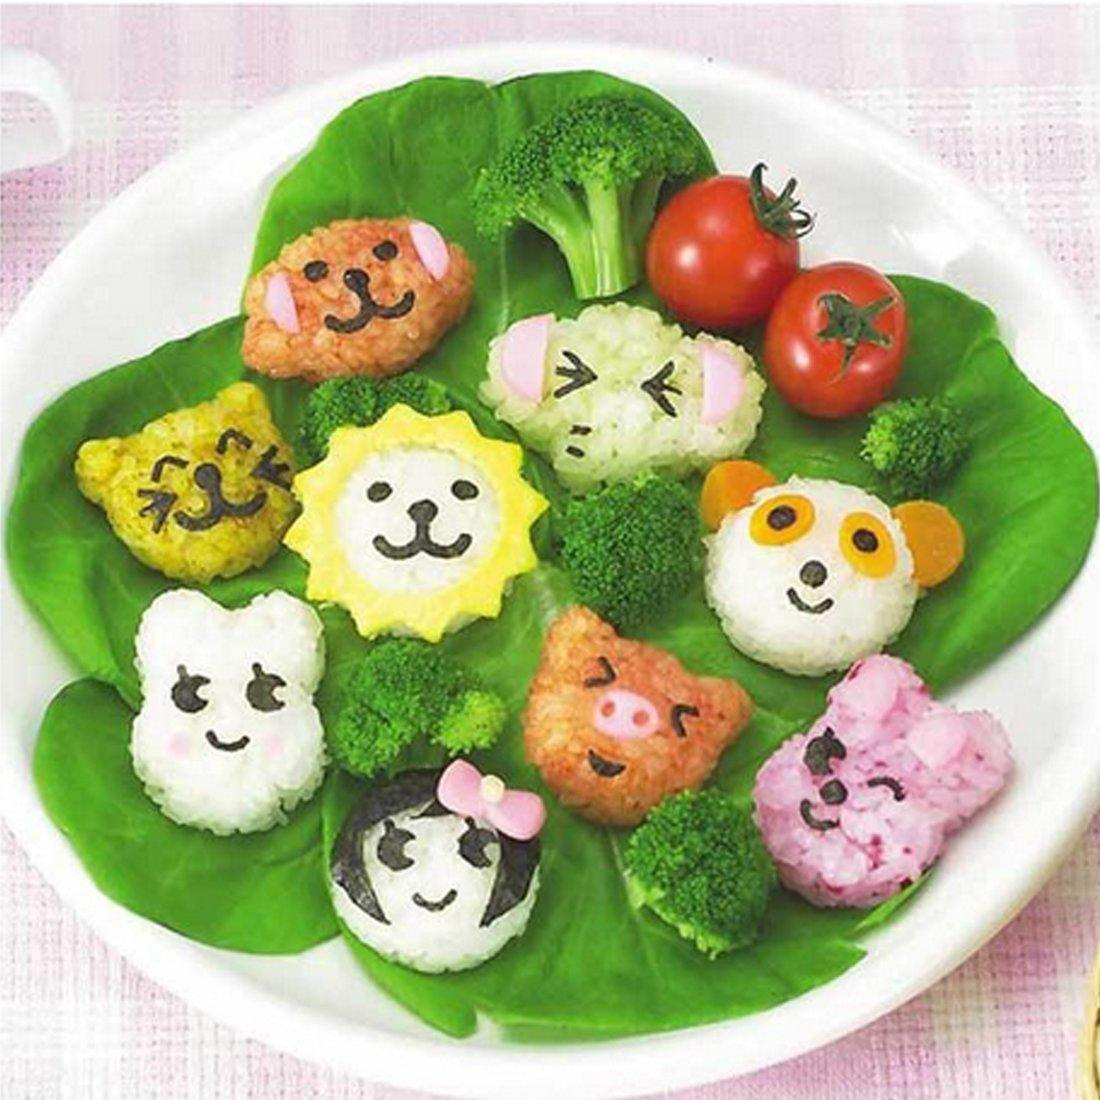 6Pcs Cute Boiled Egg Mold